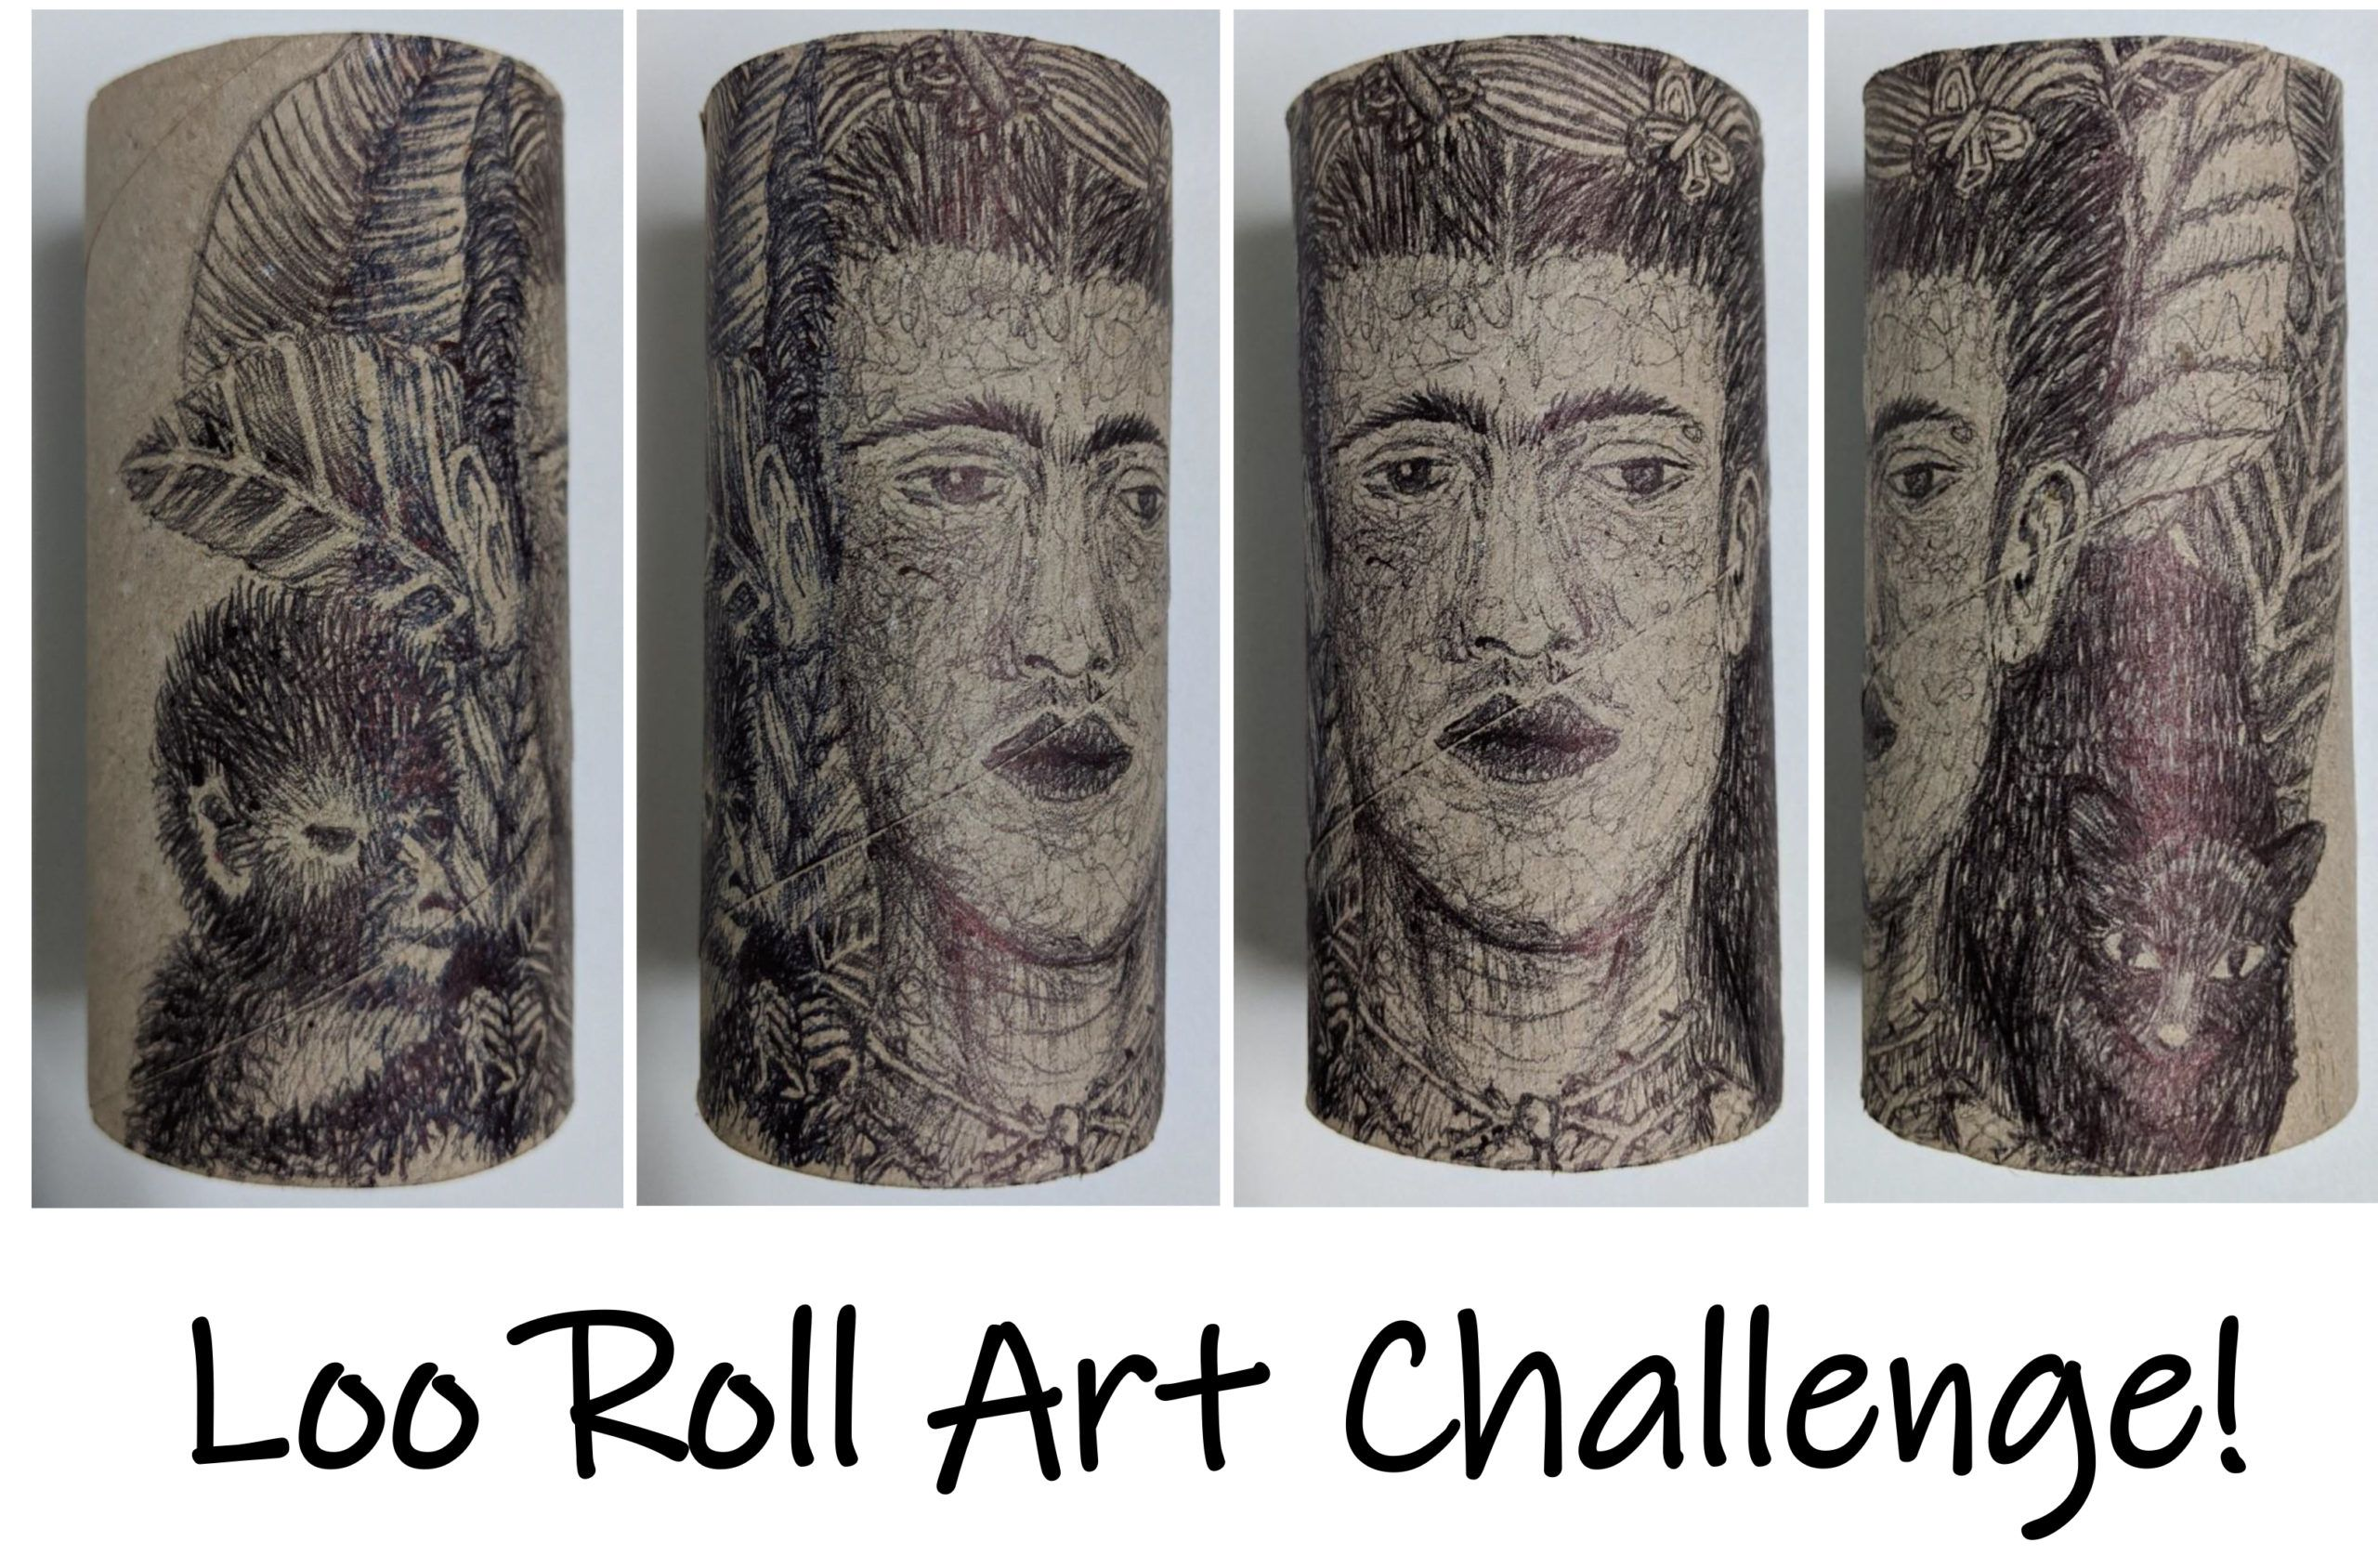 Loo Roll Art Challenge In 2020 Art Challenge Distance Learning